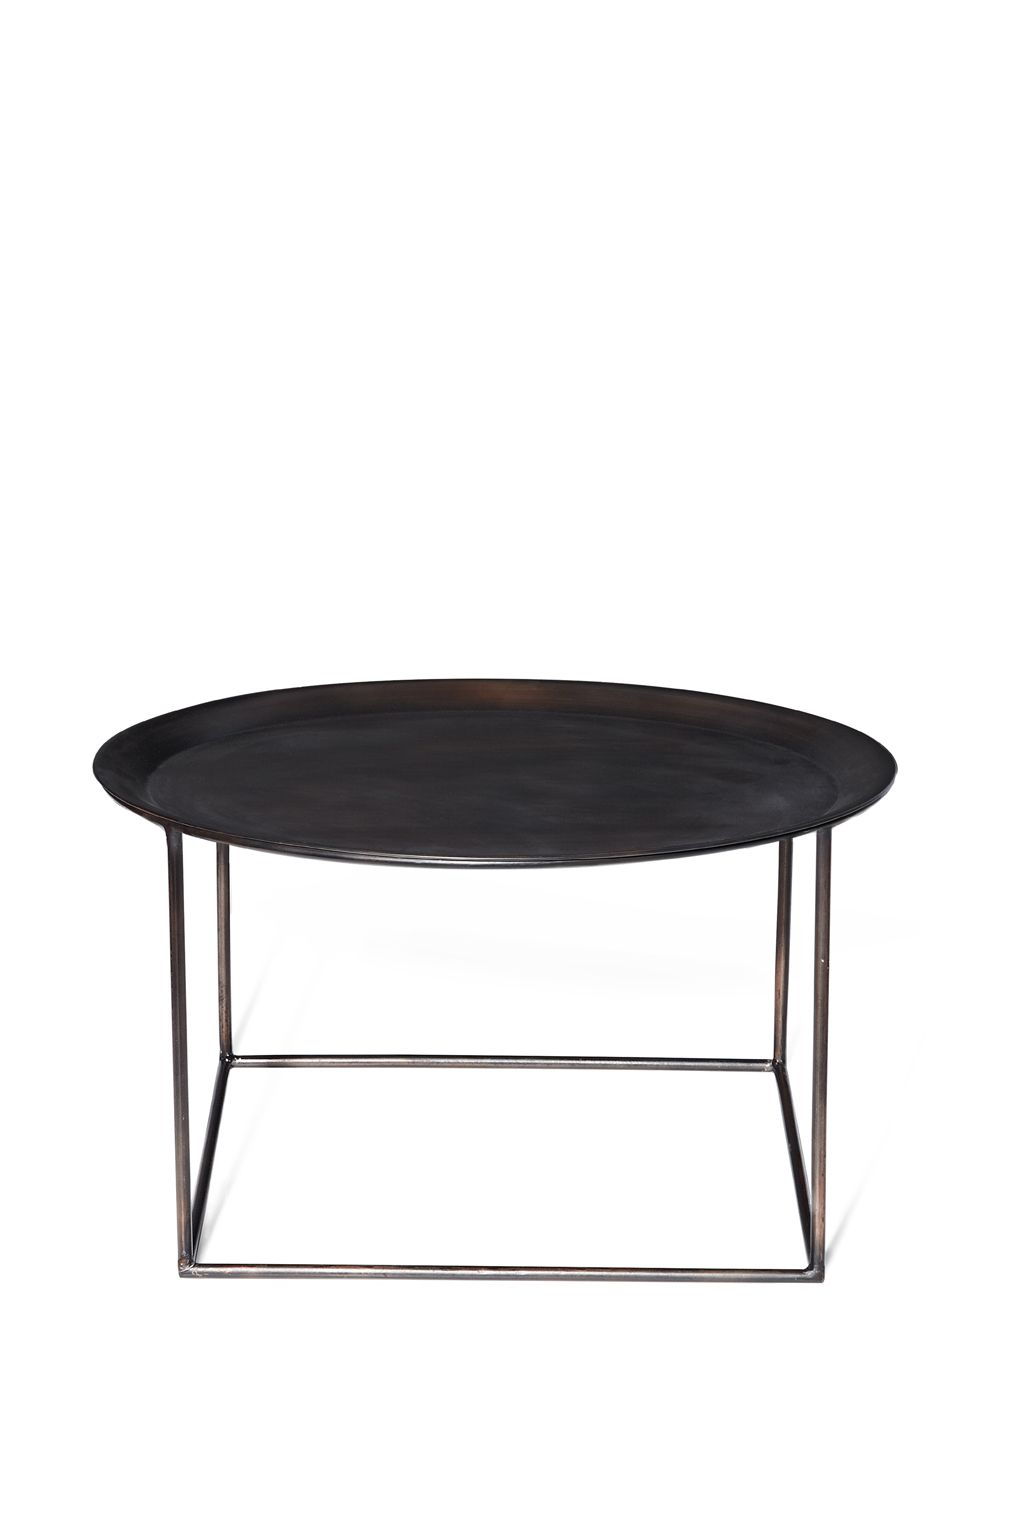 High Quality Steel Coffee Table Square Base Round Table Top Antique Copper Finish £204